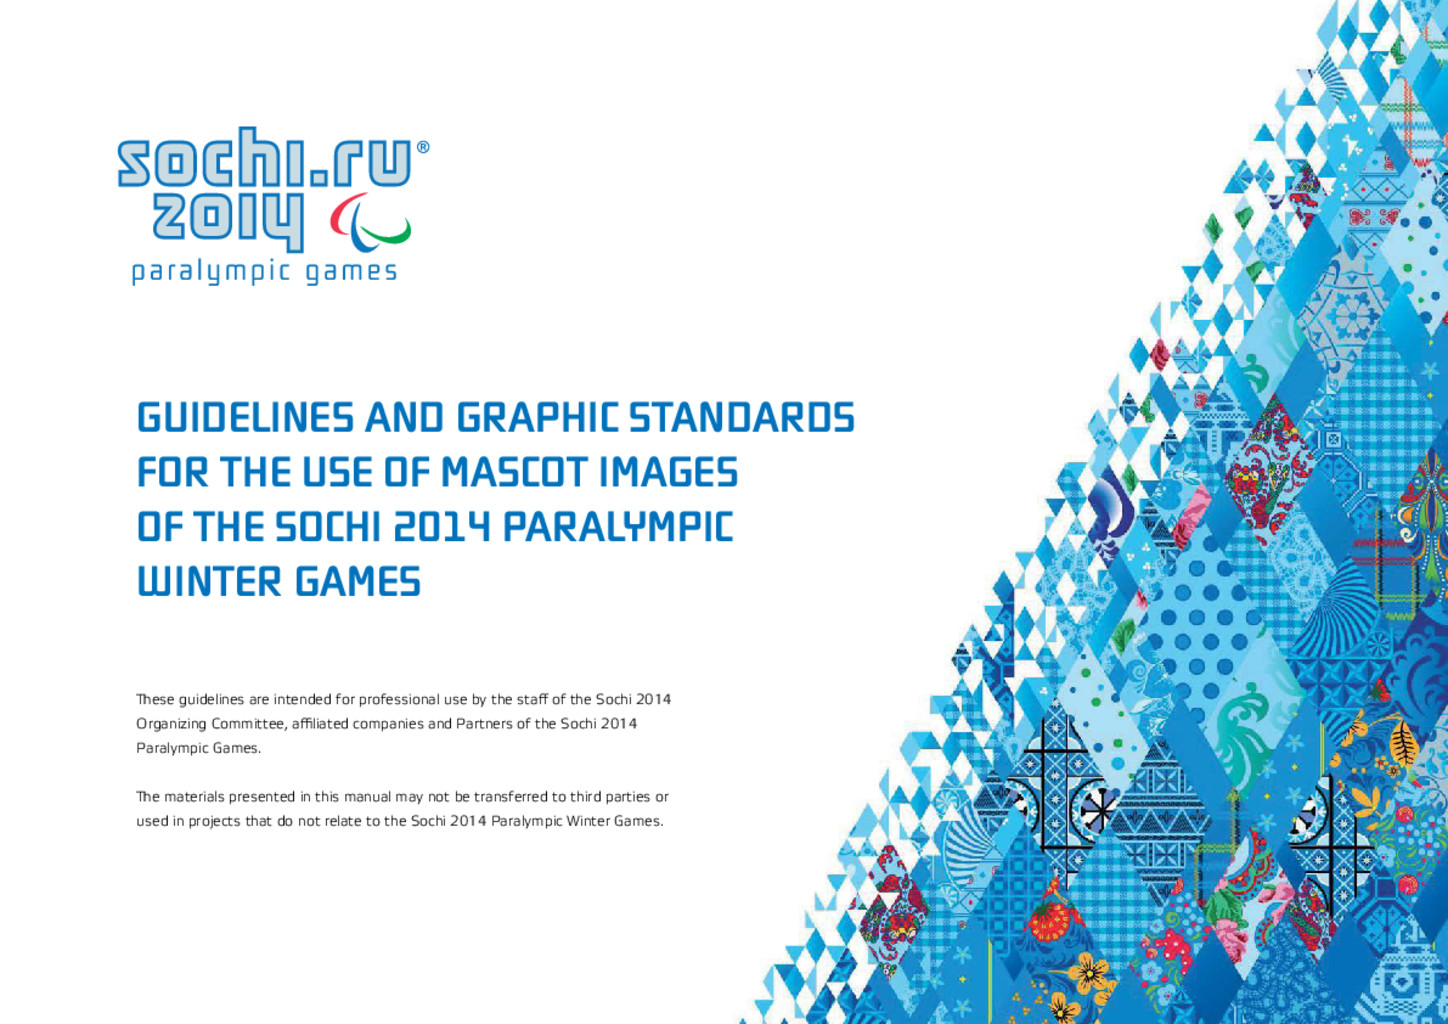 Guidelines and graphic standards for the use of mascot images of the Sochi 2014 Paralympic Winter Games : Paralympic Games / Organizing Committee of XXII Olympic Winter Games and XI Paralympic Winter Games 2014 in Sochi | Olympic Winter Games. Organizing Committee. 22, 2014, Sochi